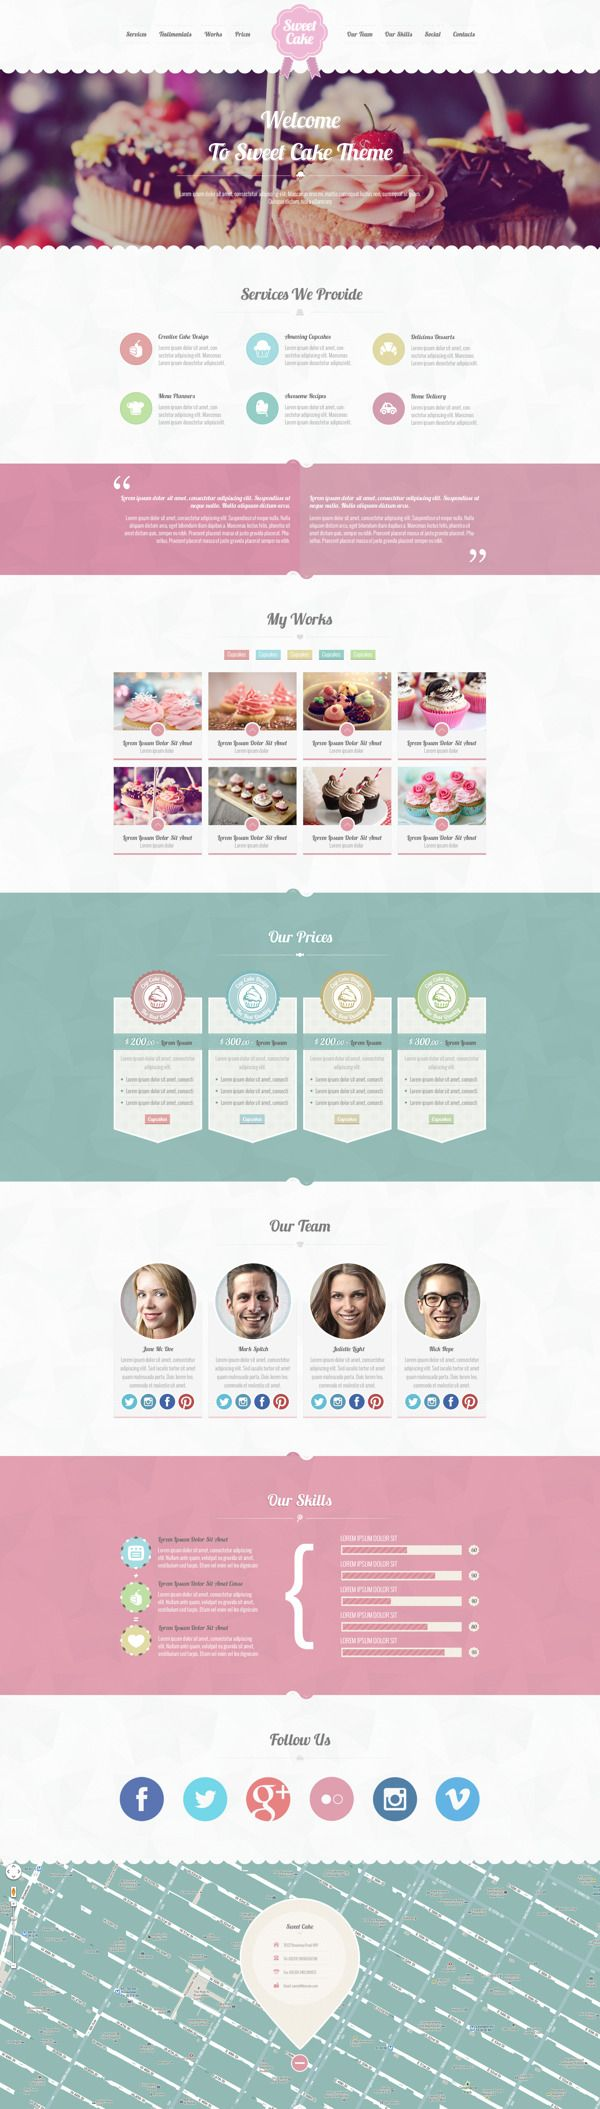 Sweet Cake - One Page PSD Theme on Behance